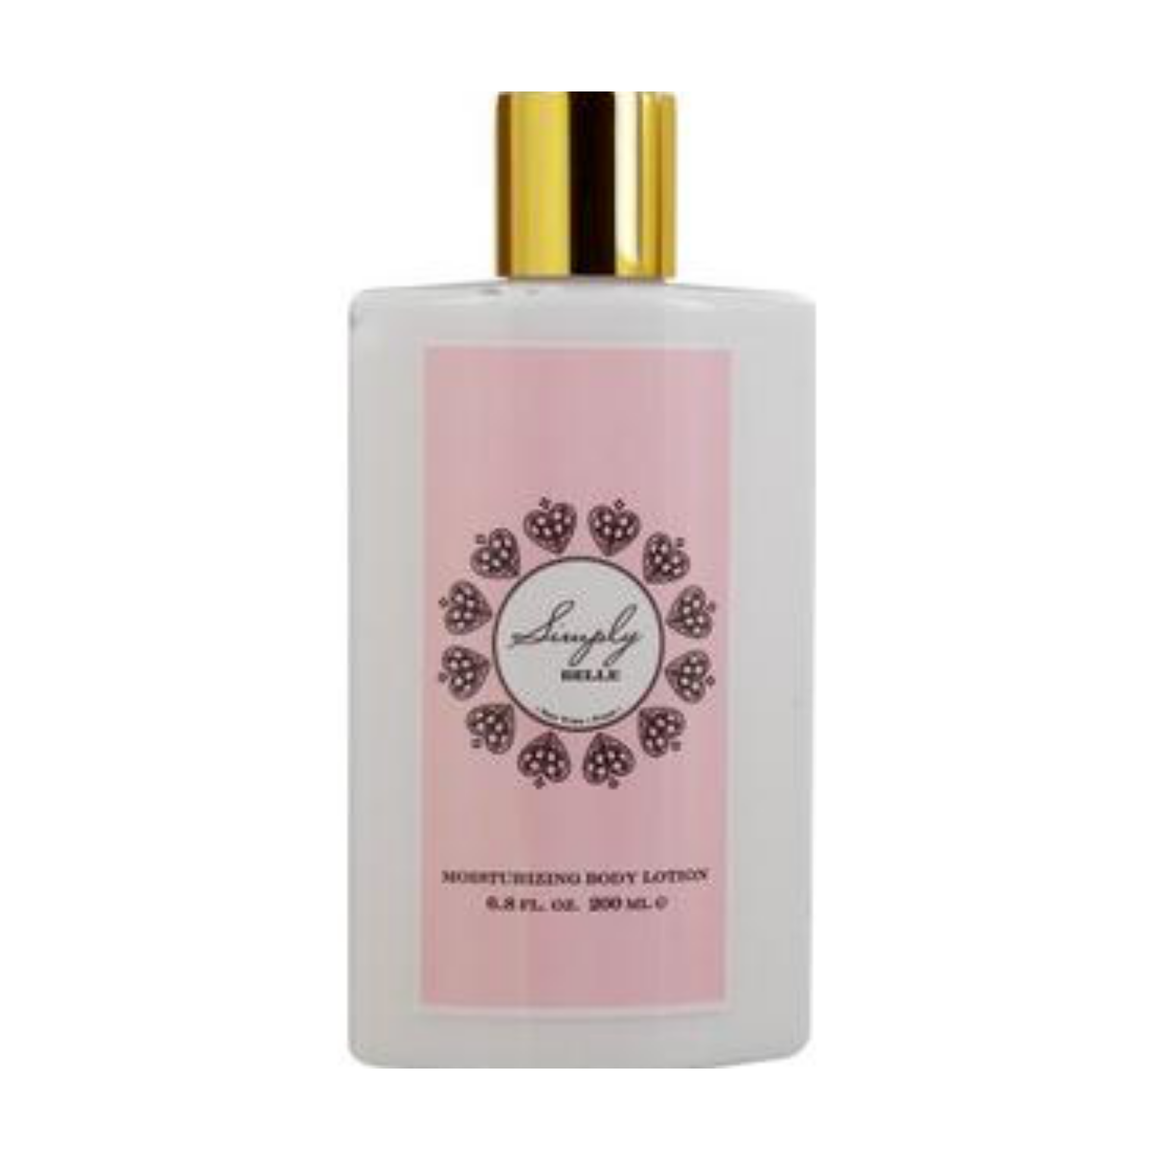 SIMPLY BELLE BODY LOTION 200ML - Bowerbird on Argyle